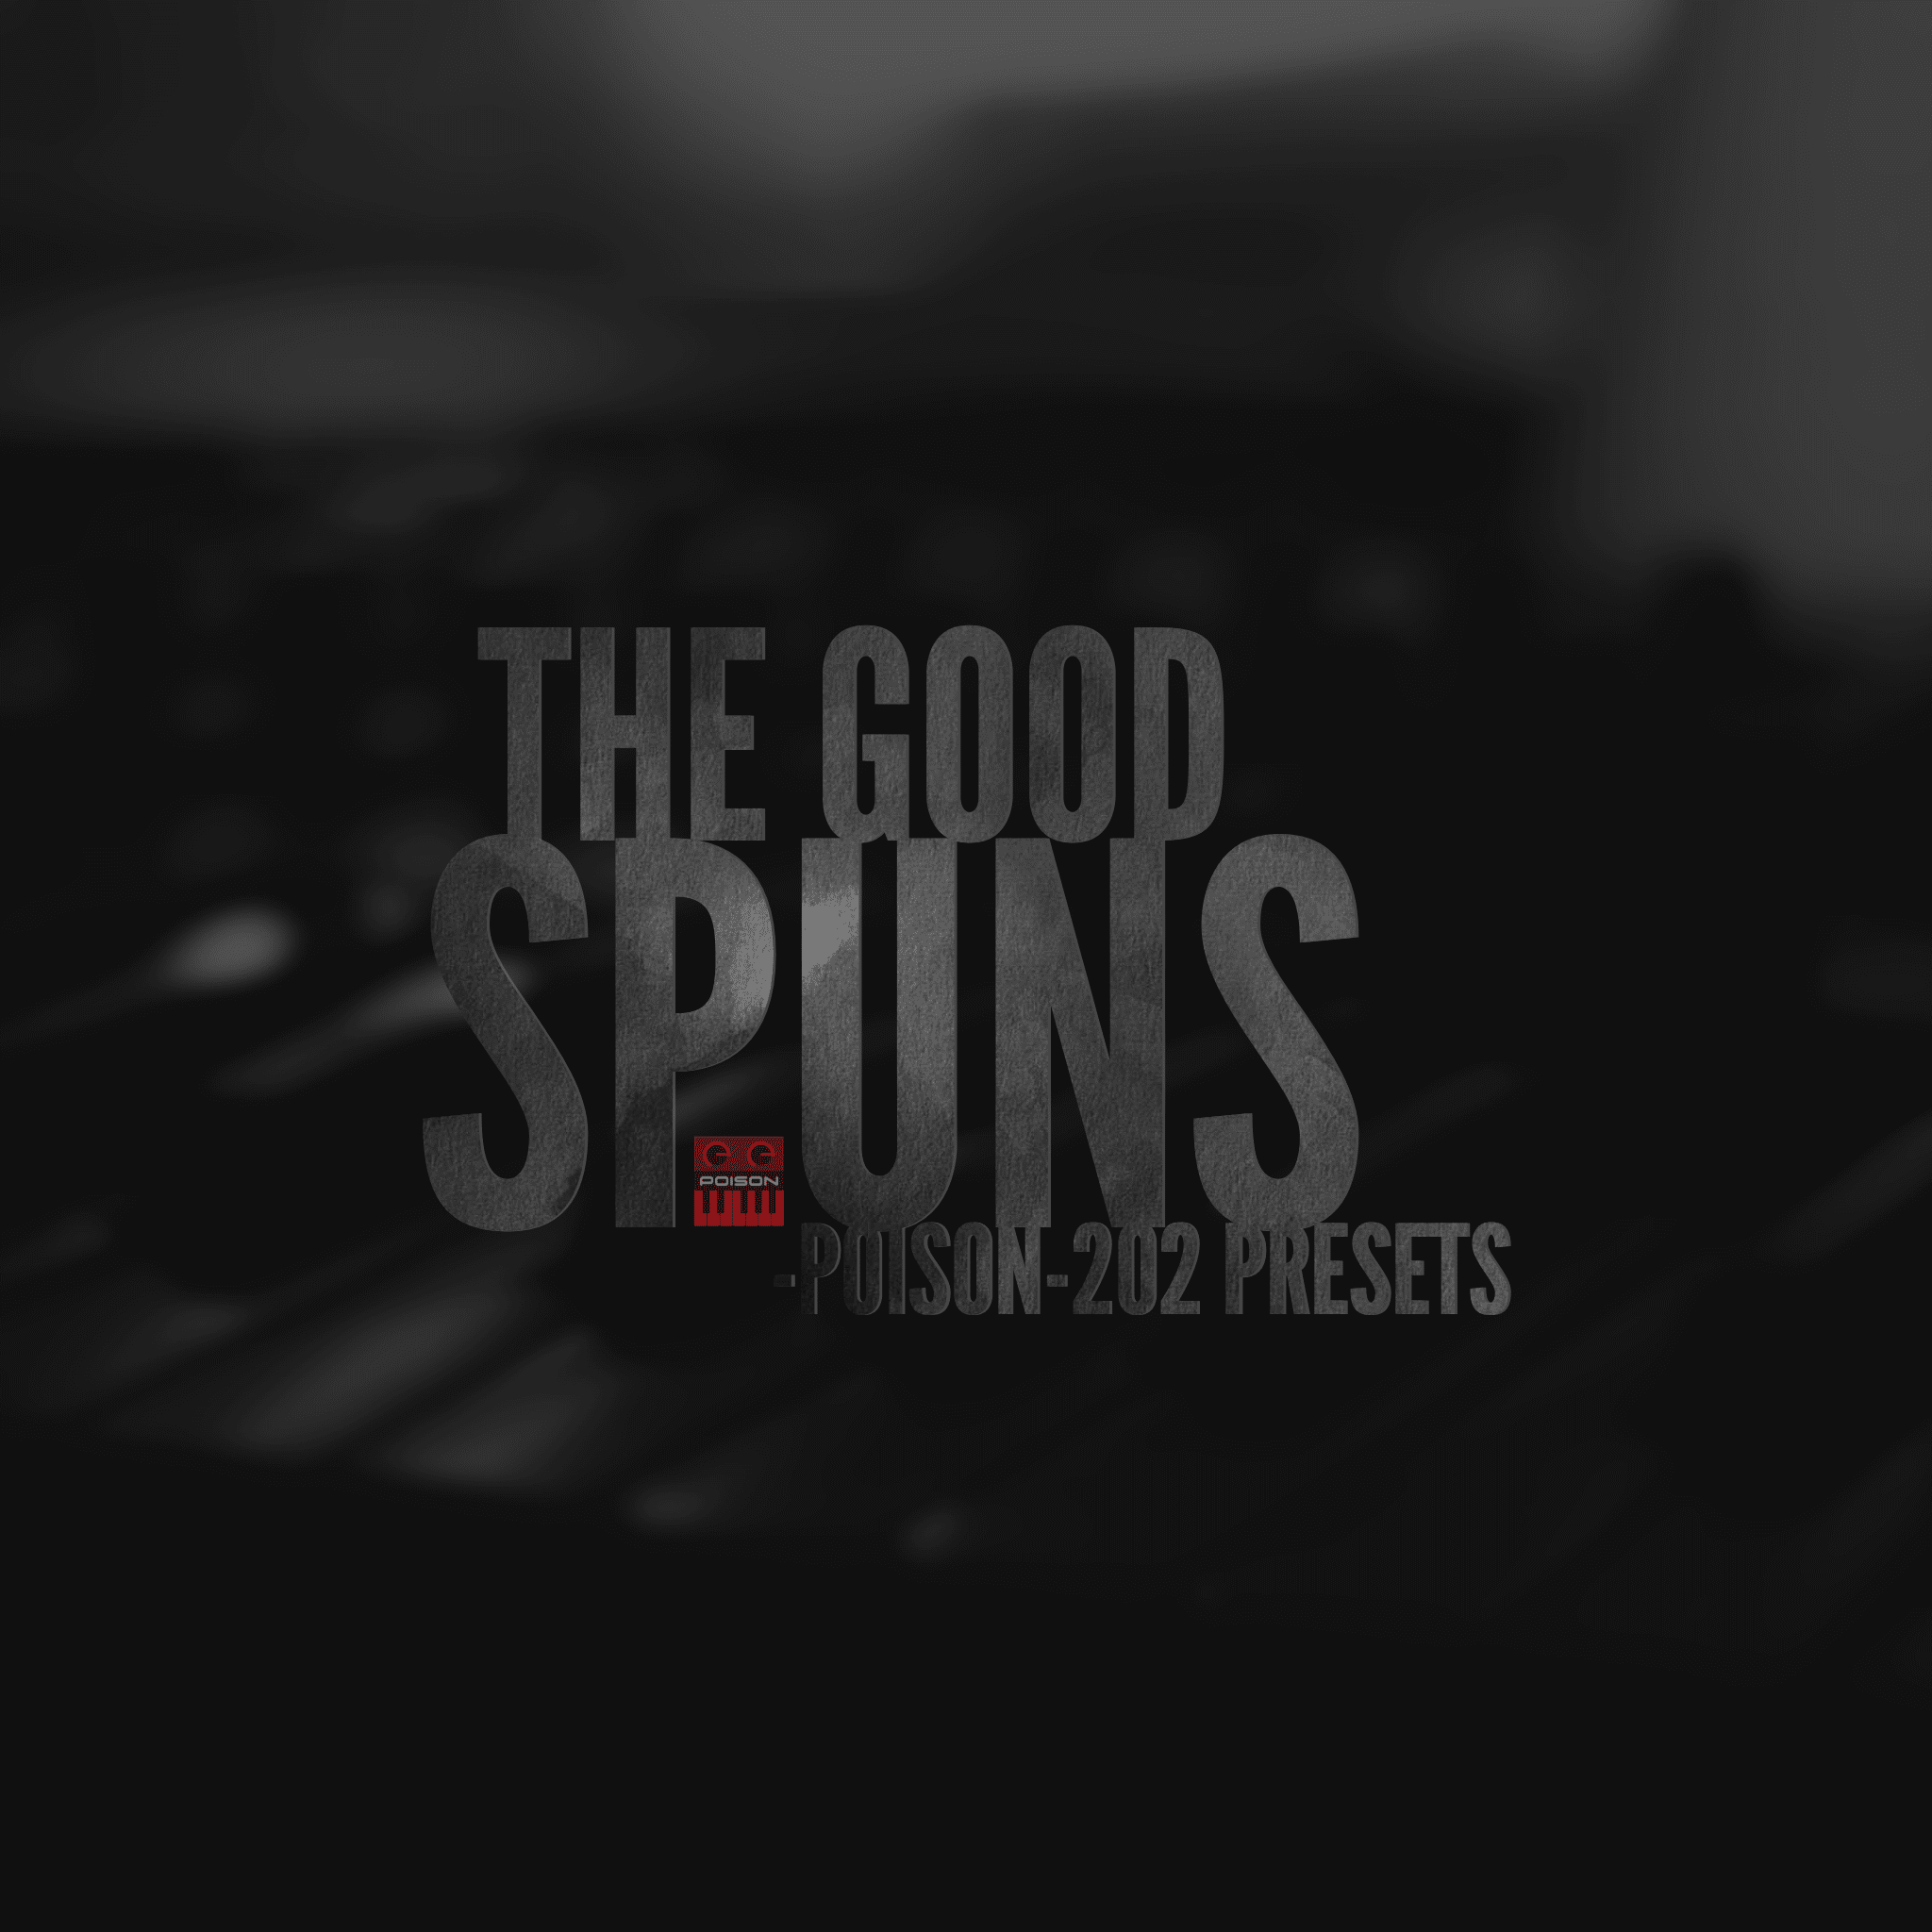 The Good Spuns presets for Posion 202